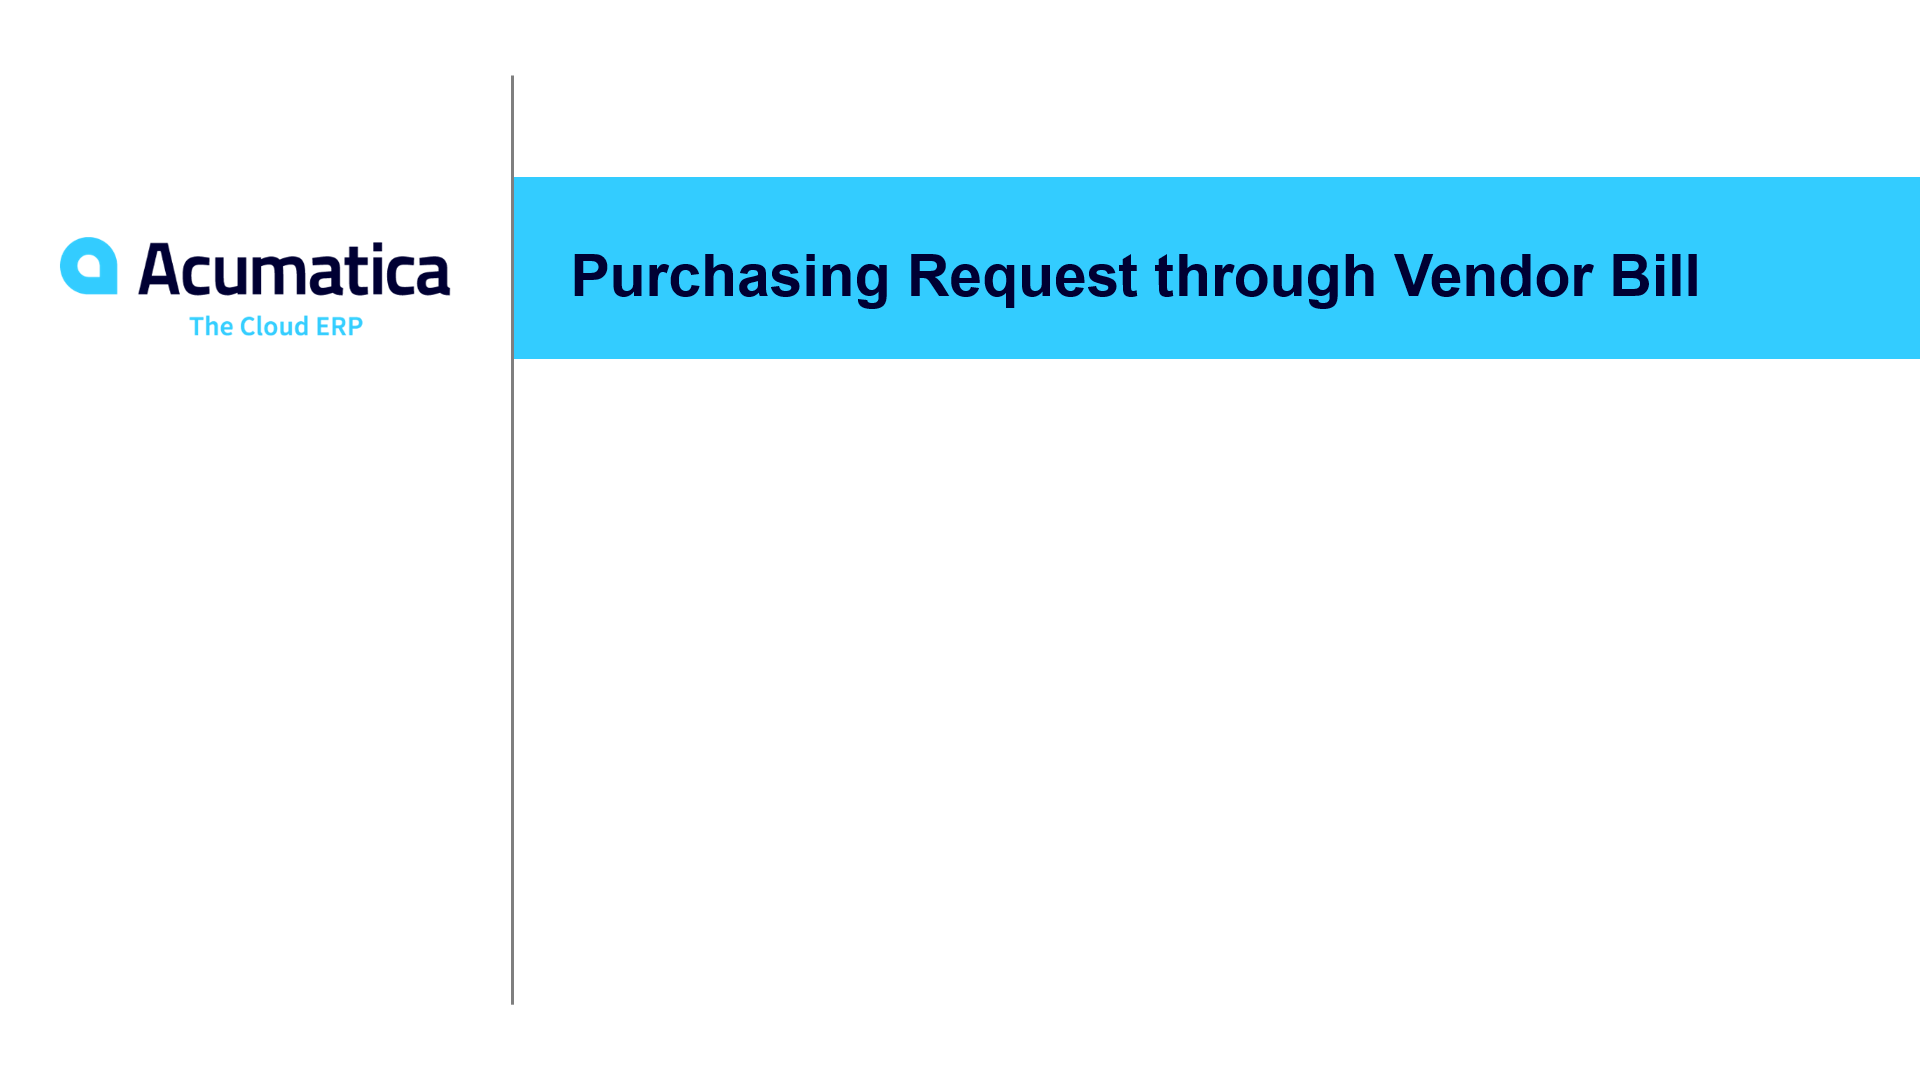 Purchasing Request through Vendor Bill (May 2019)